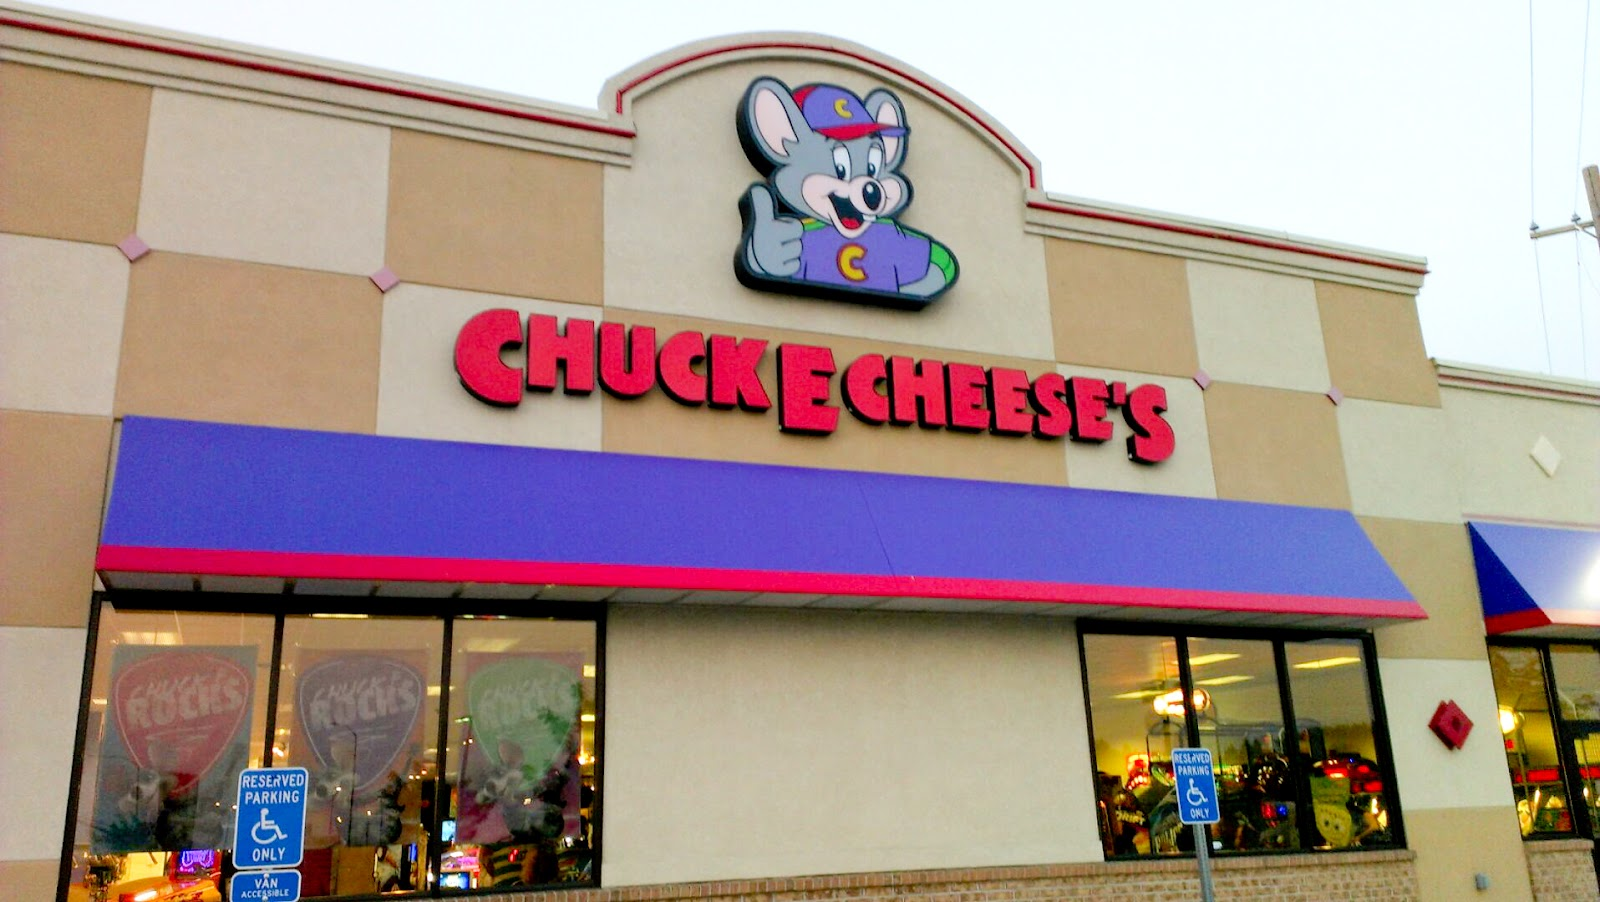 5 Adults Assault Police At Chuck E. Cheese